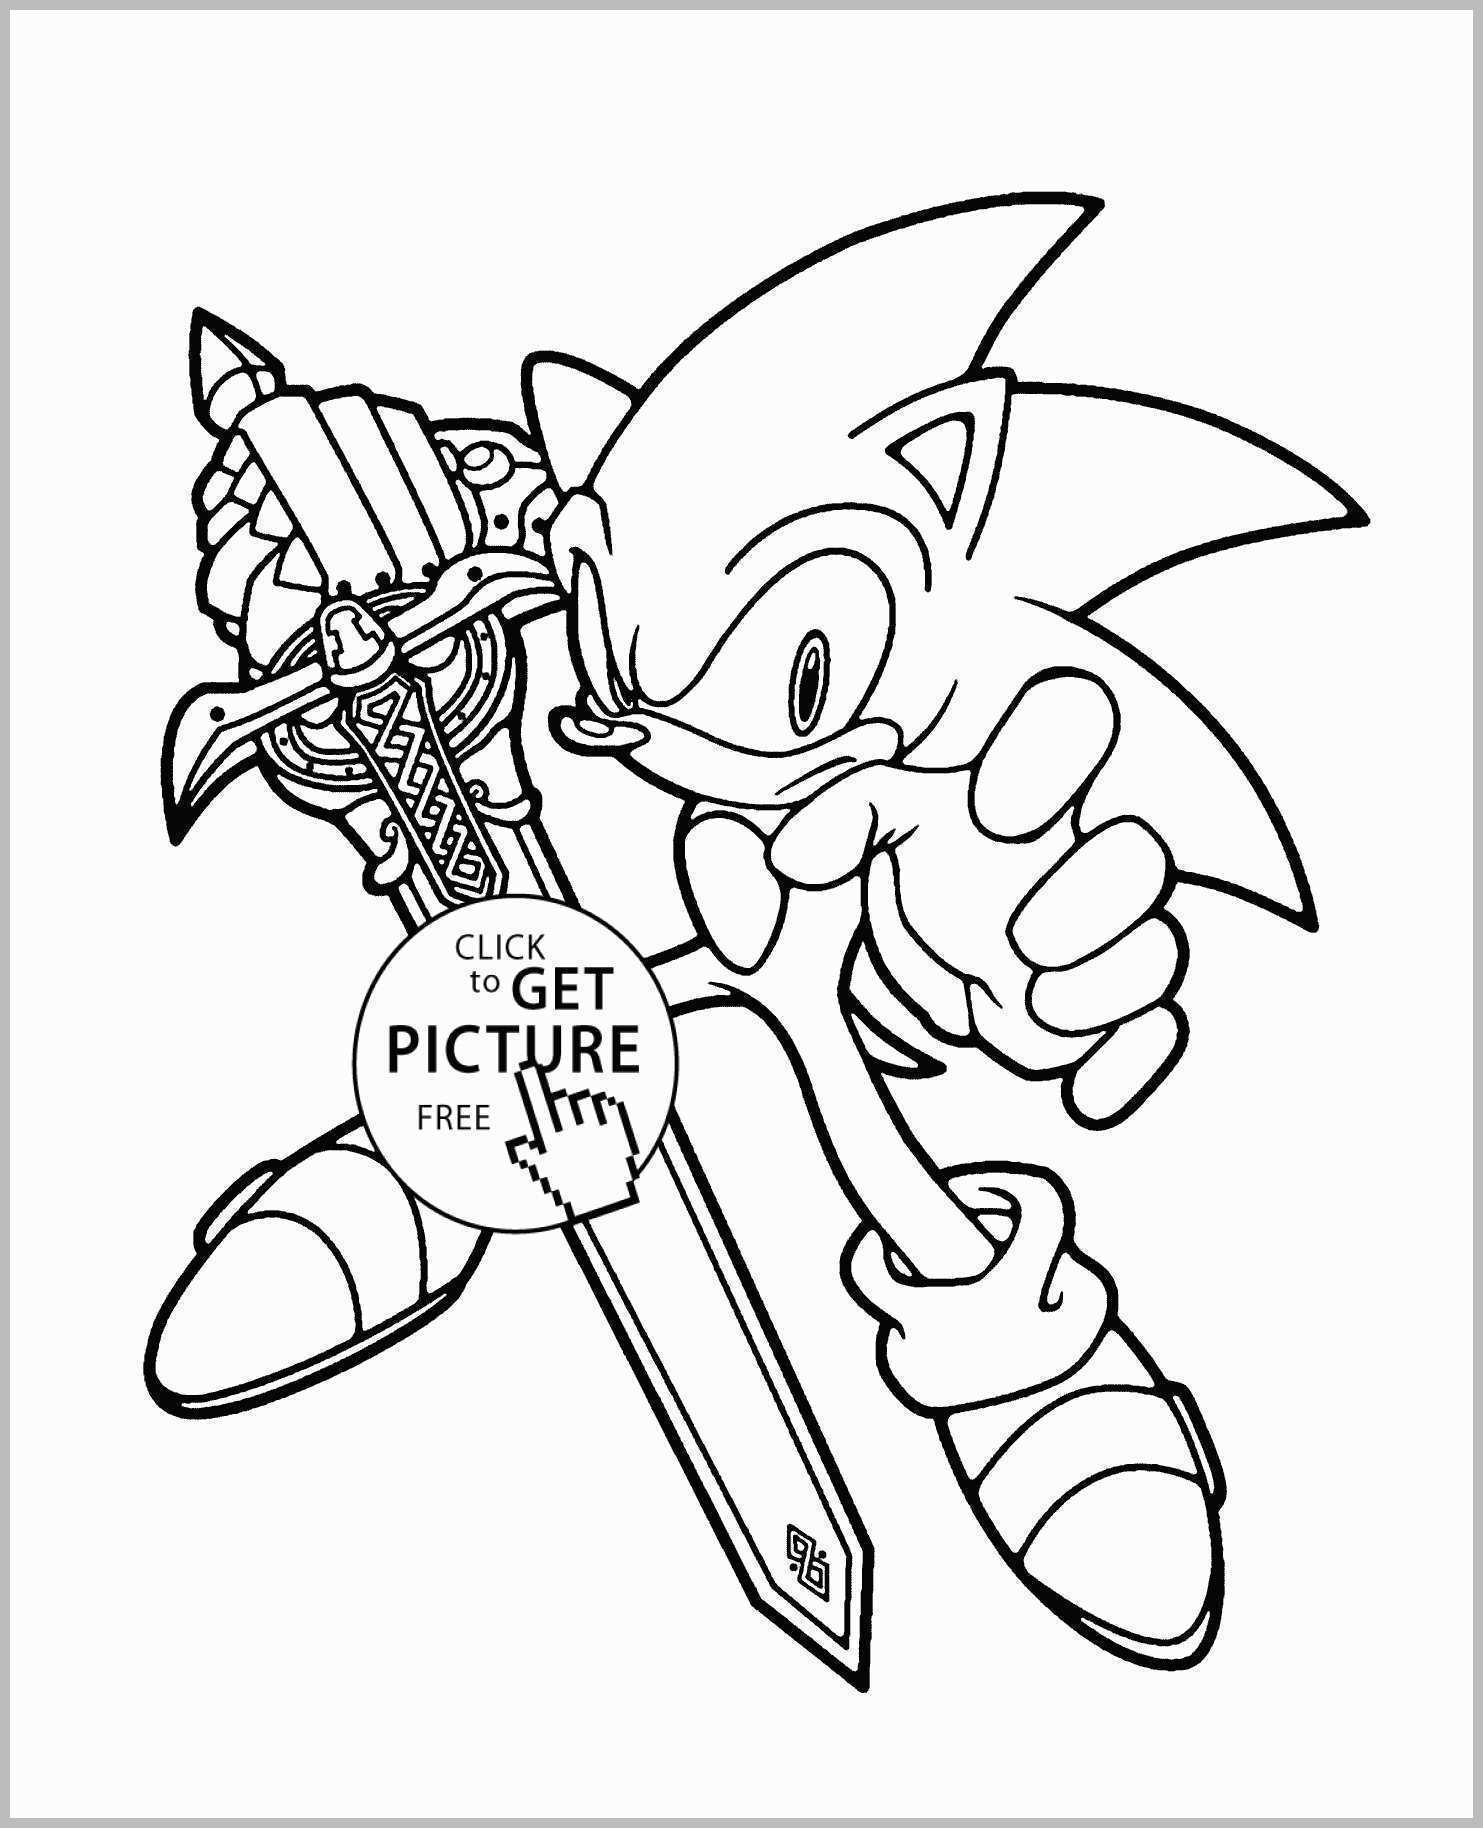 Coloring Pages : Sonicng Book Pages Unique Free Printable The - Sonic Coloring Pages Free Printable